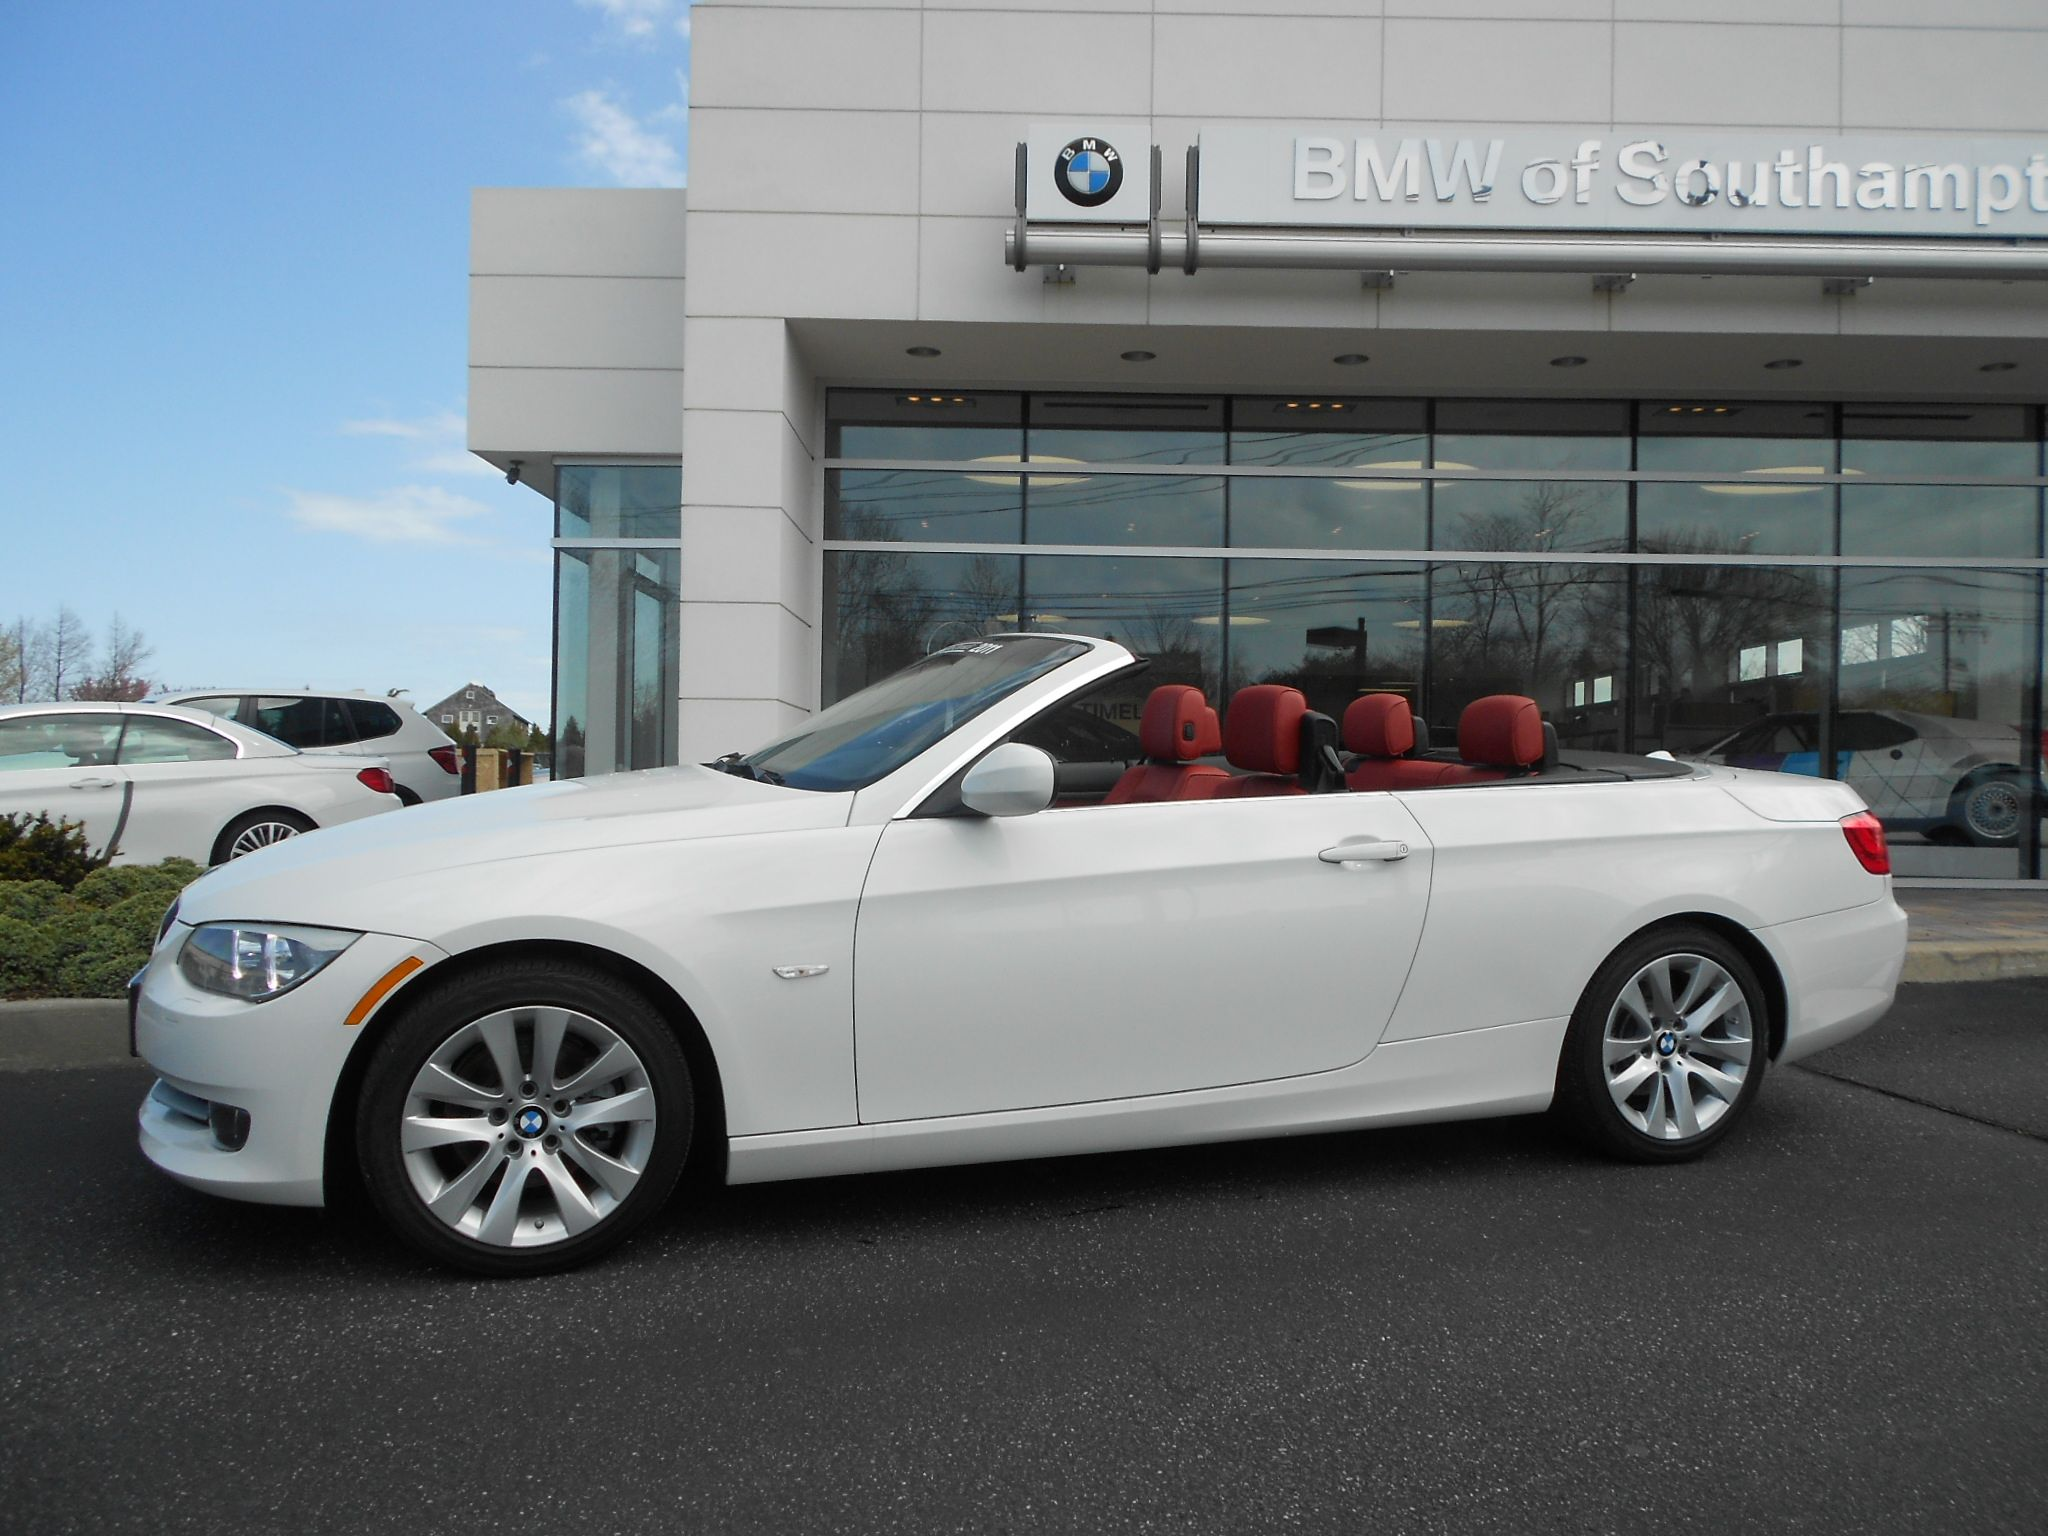 small resolution of certified used 2011 bmw 328i convertible 3 for sale in southampton ny wbadw7c58be542725 2011bmw bmw328iconvertible bmwconvertible southampton bmw